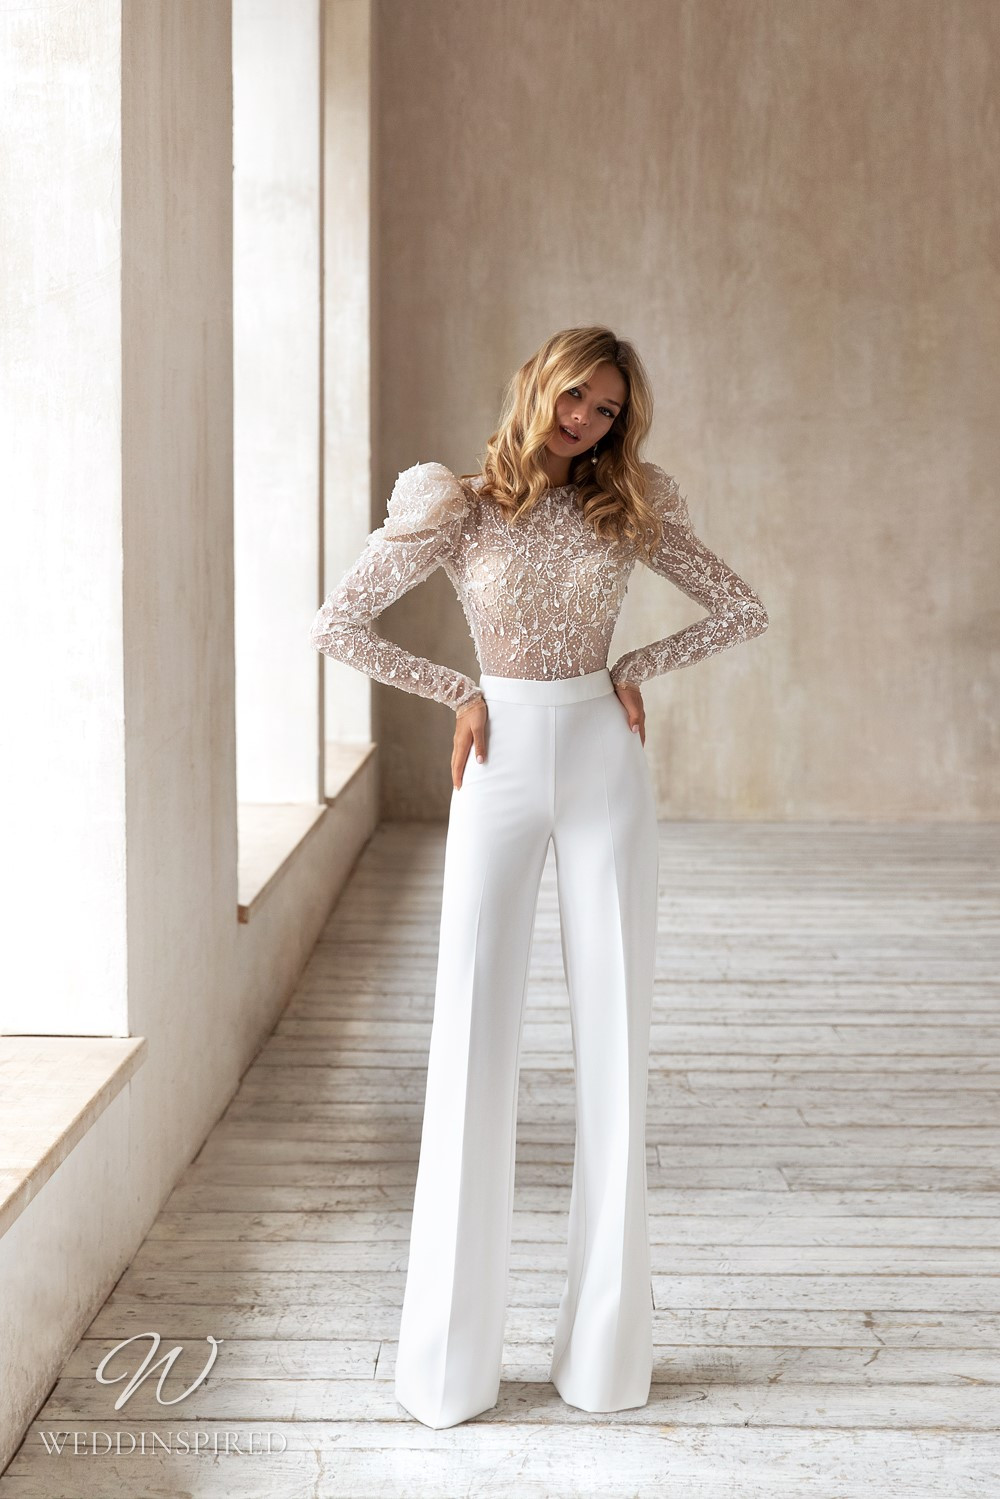 An Eva Lendel 2021 crepe and mesh wedding jumpsuit / pantsuit with long sleeves and beading